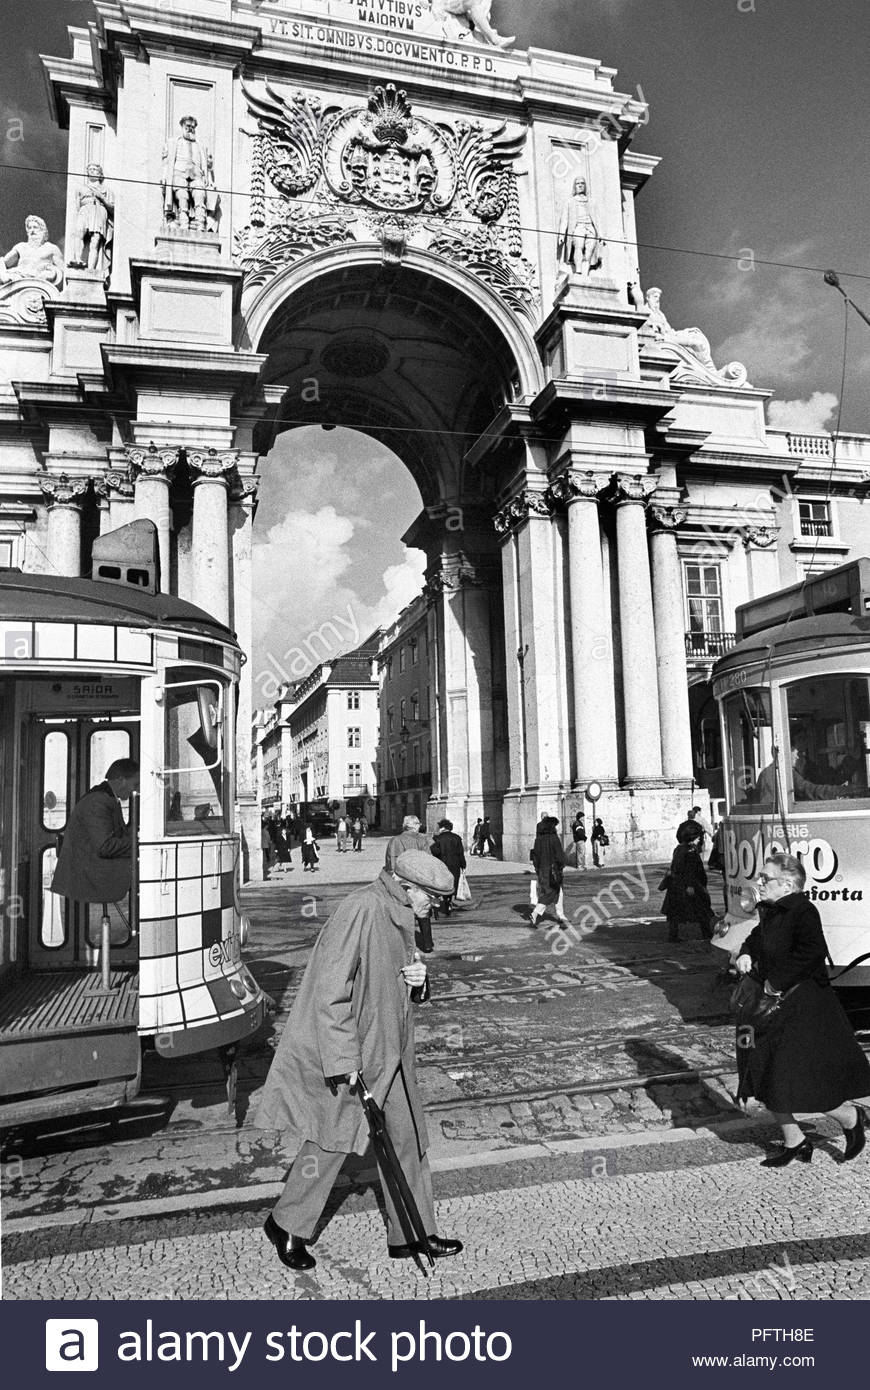 A hunched old man in overcoat and cloth cap, walks past trams in the Praça do Comércio in Lisbon, Portugal. Towering above is the Rua Augusta Arch - Stock Image